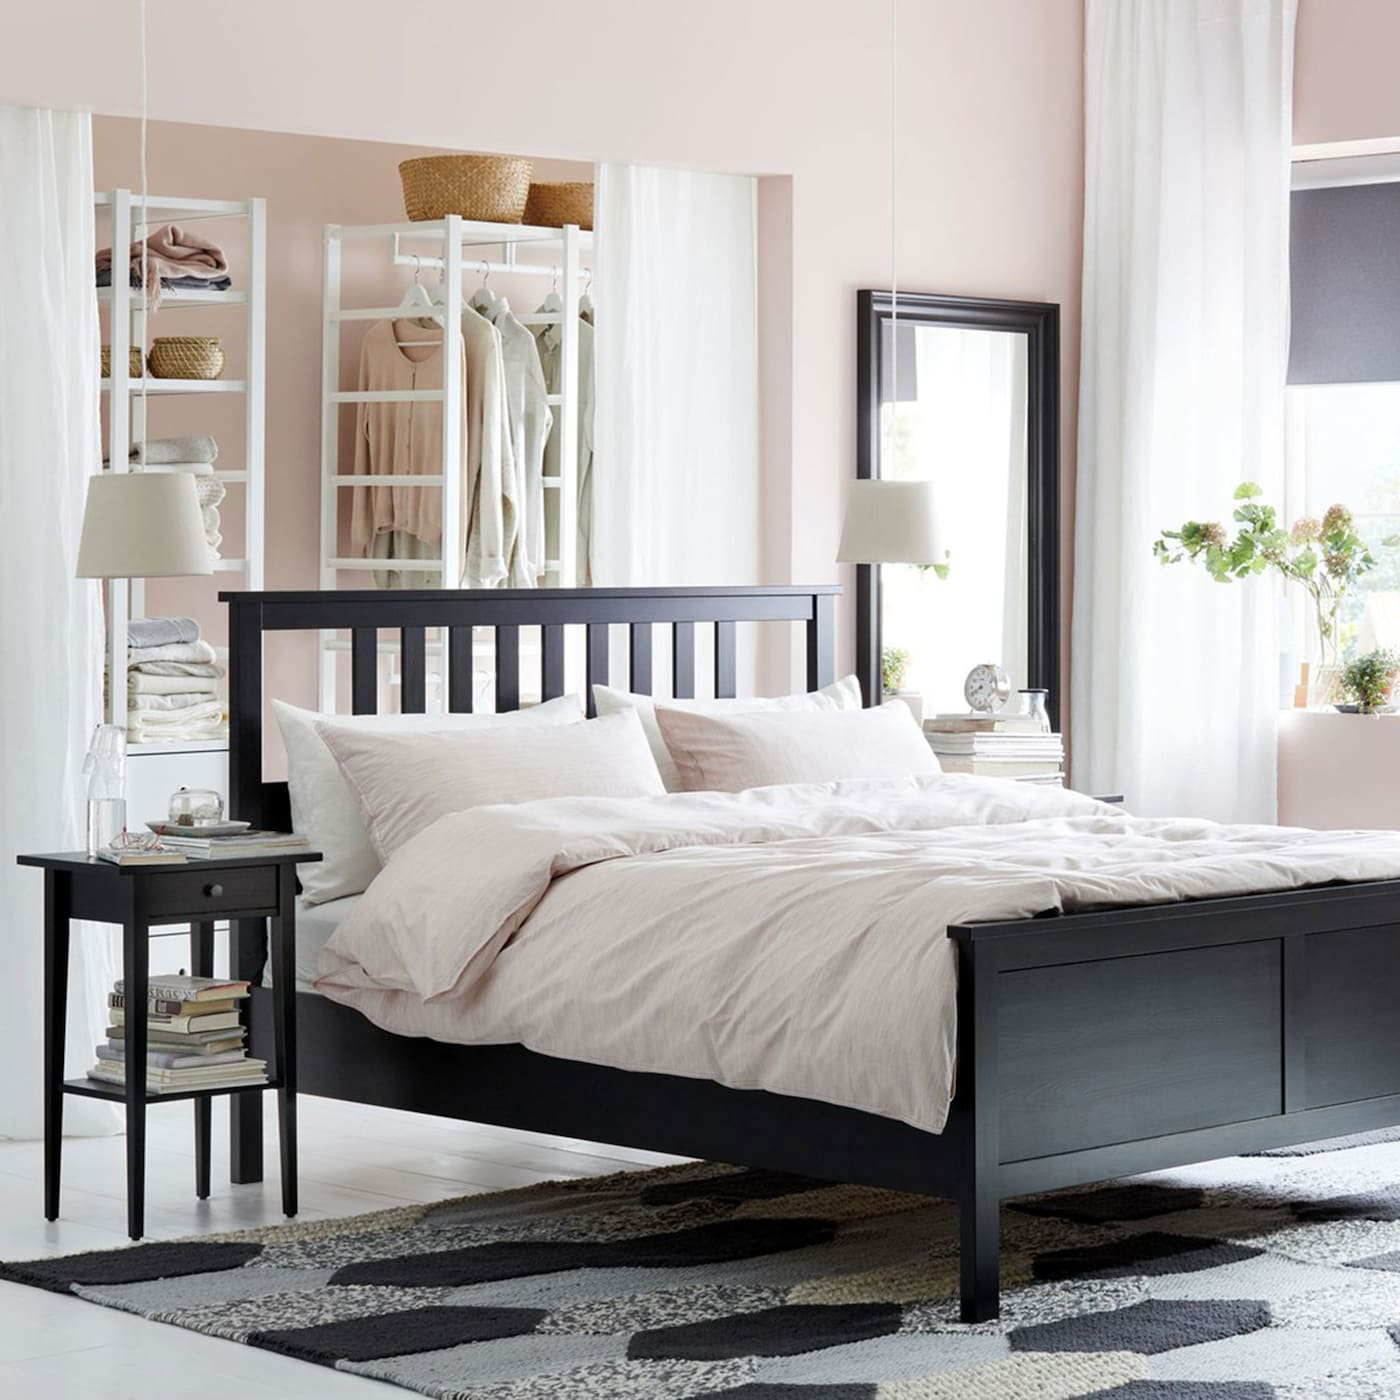 An IKEA HEMNES black brown bed frame, with straight slats on the headboard, positioned bodly in the middle of a pink bedroom.